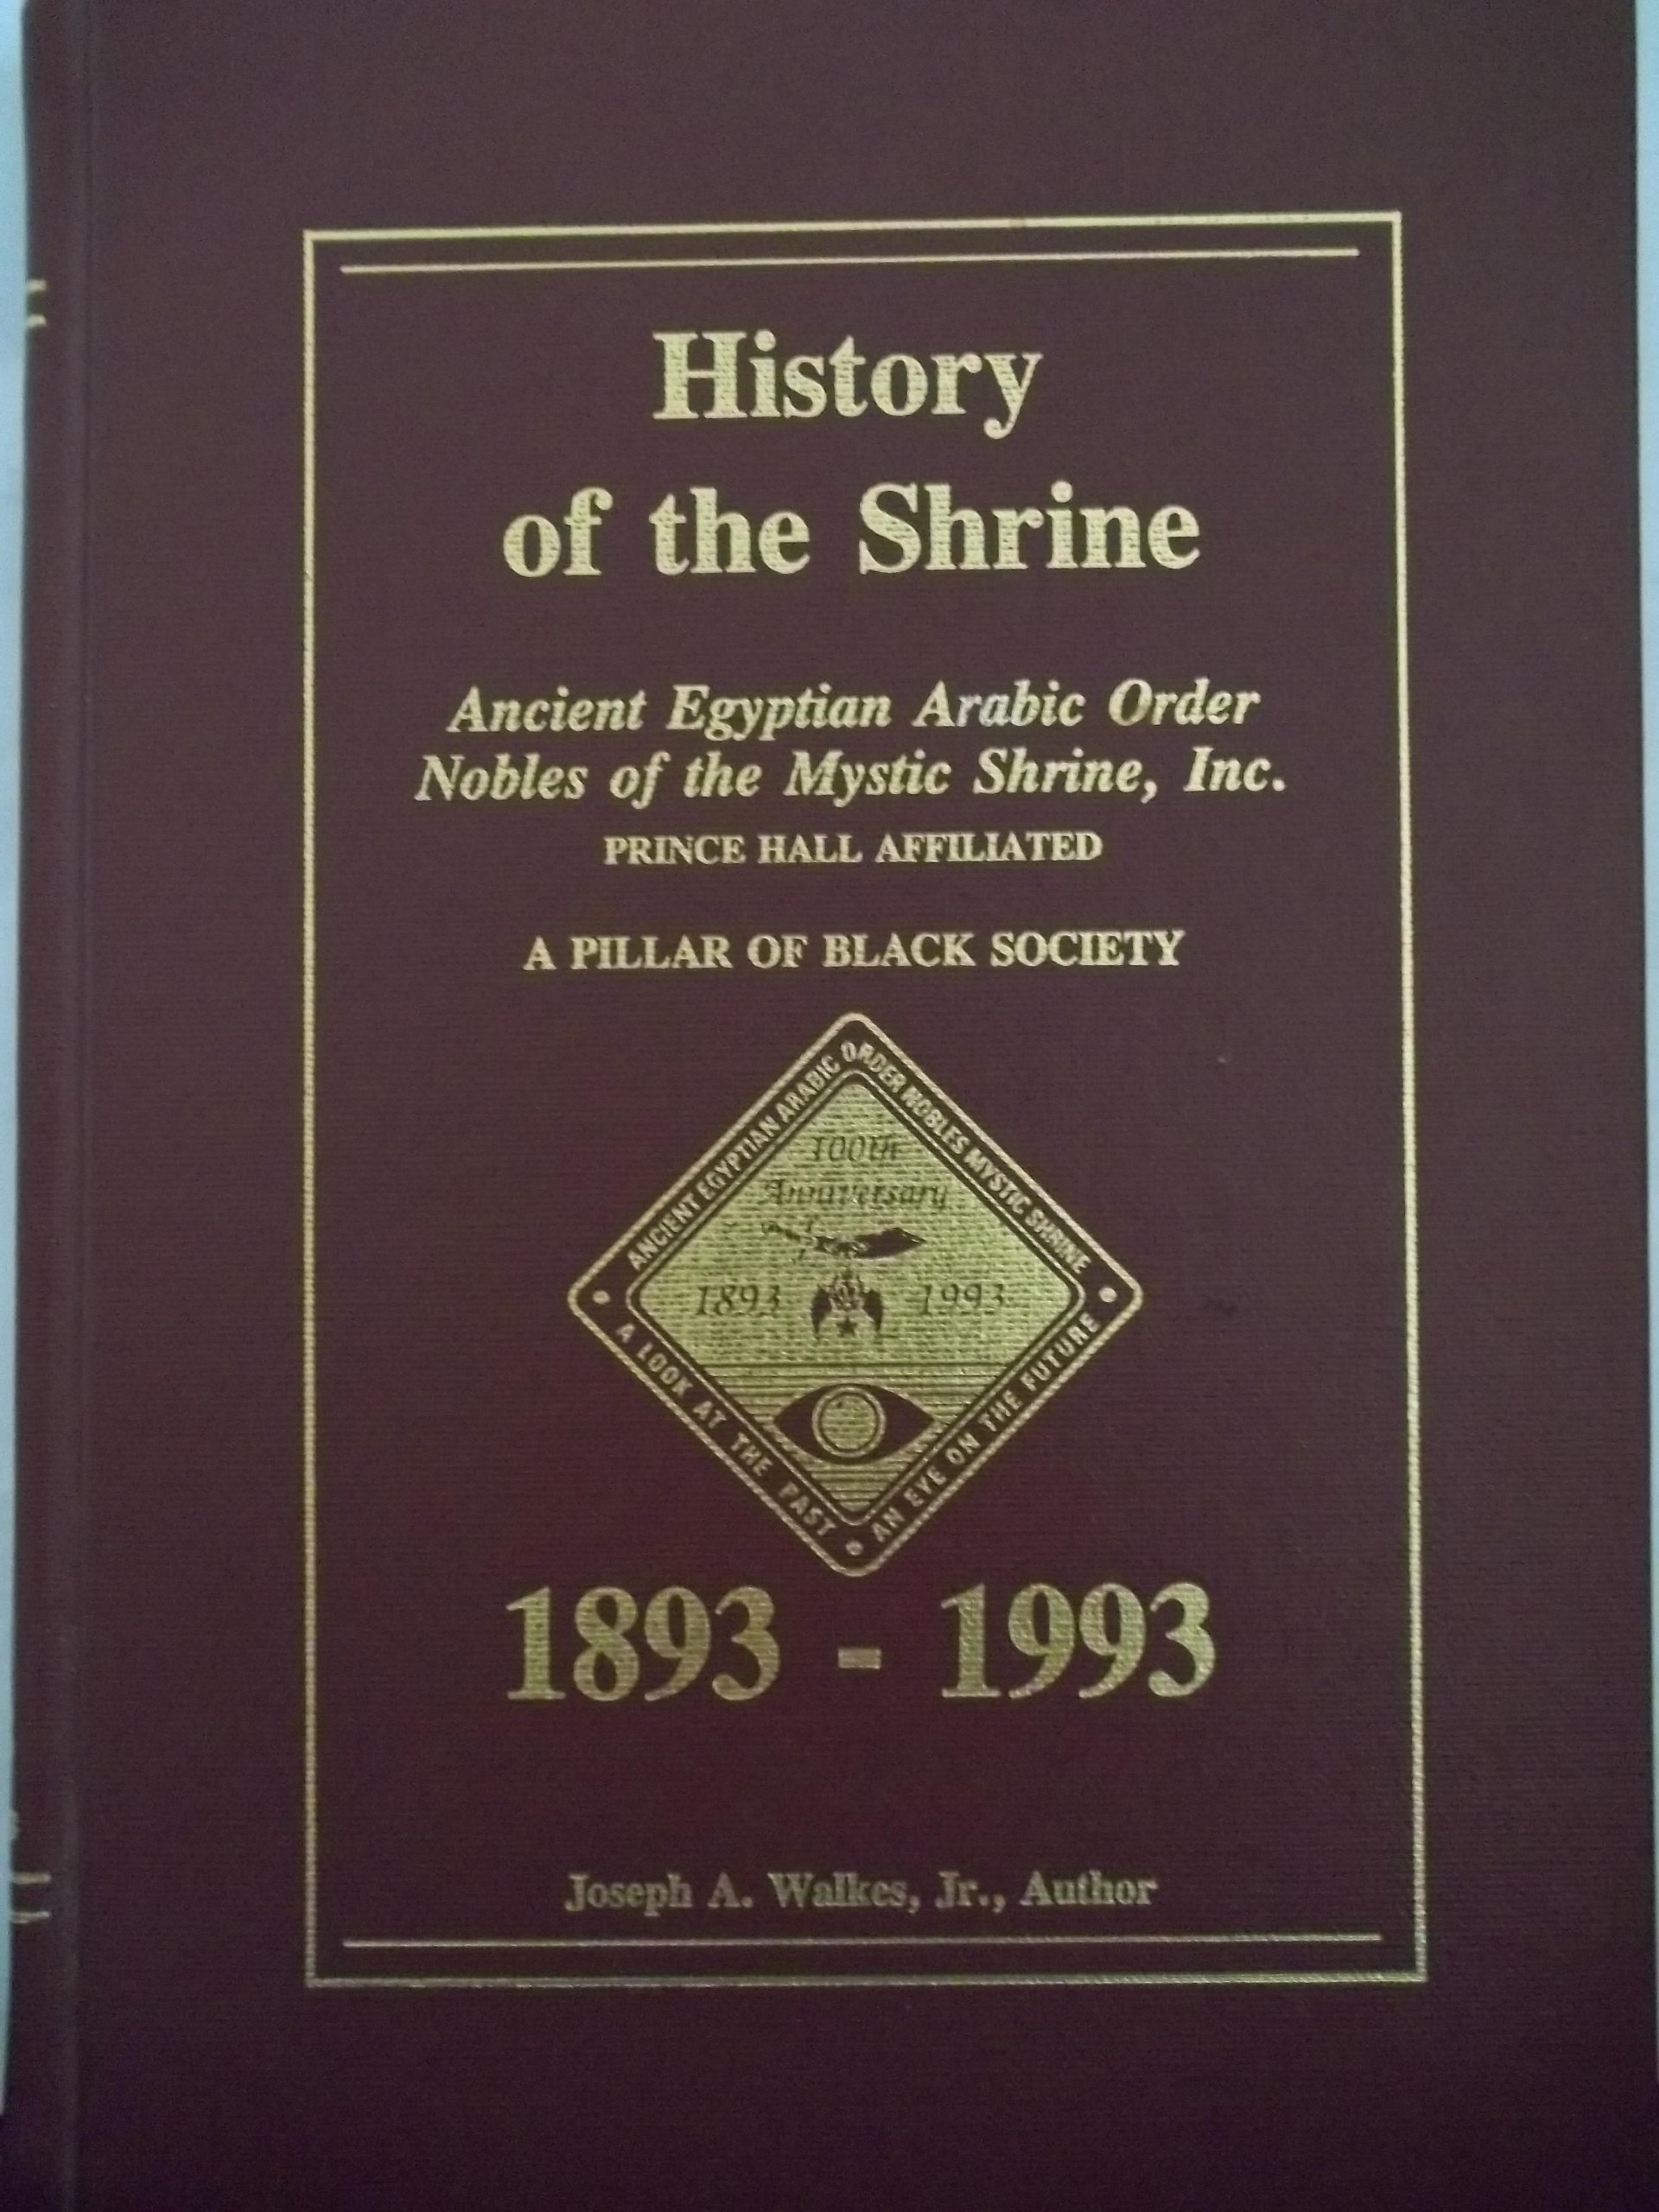 History of the shrine: Ancient Egyptian Arabic Order Nobles of the Mystic Shrine, Inc. (Prince Hall Affiliated) : a pillar of Black society, 1893-1993